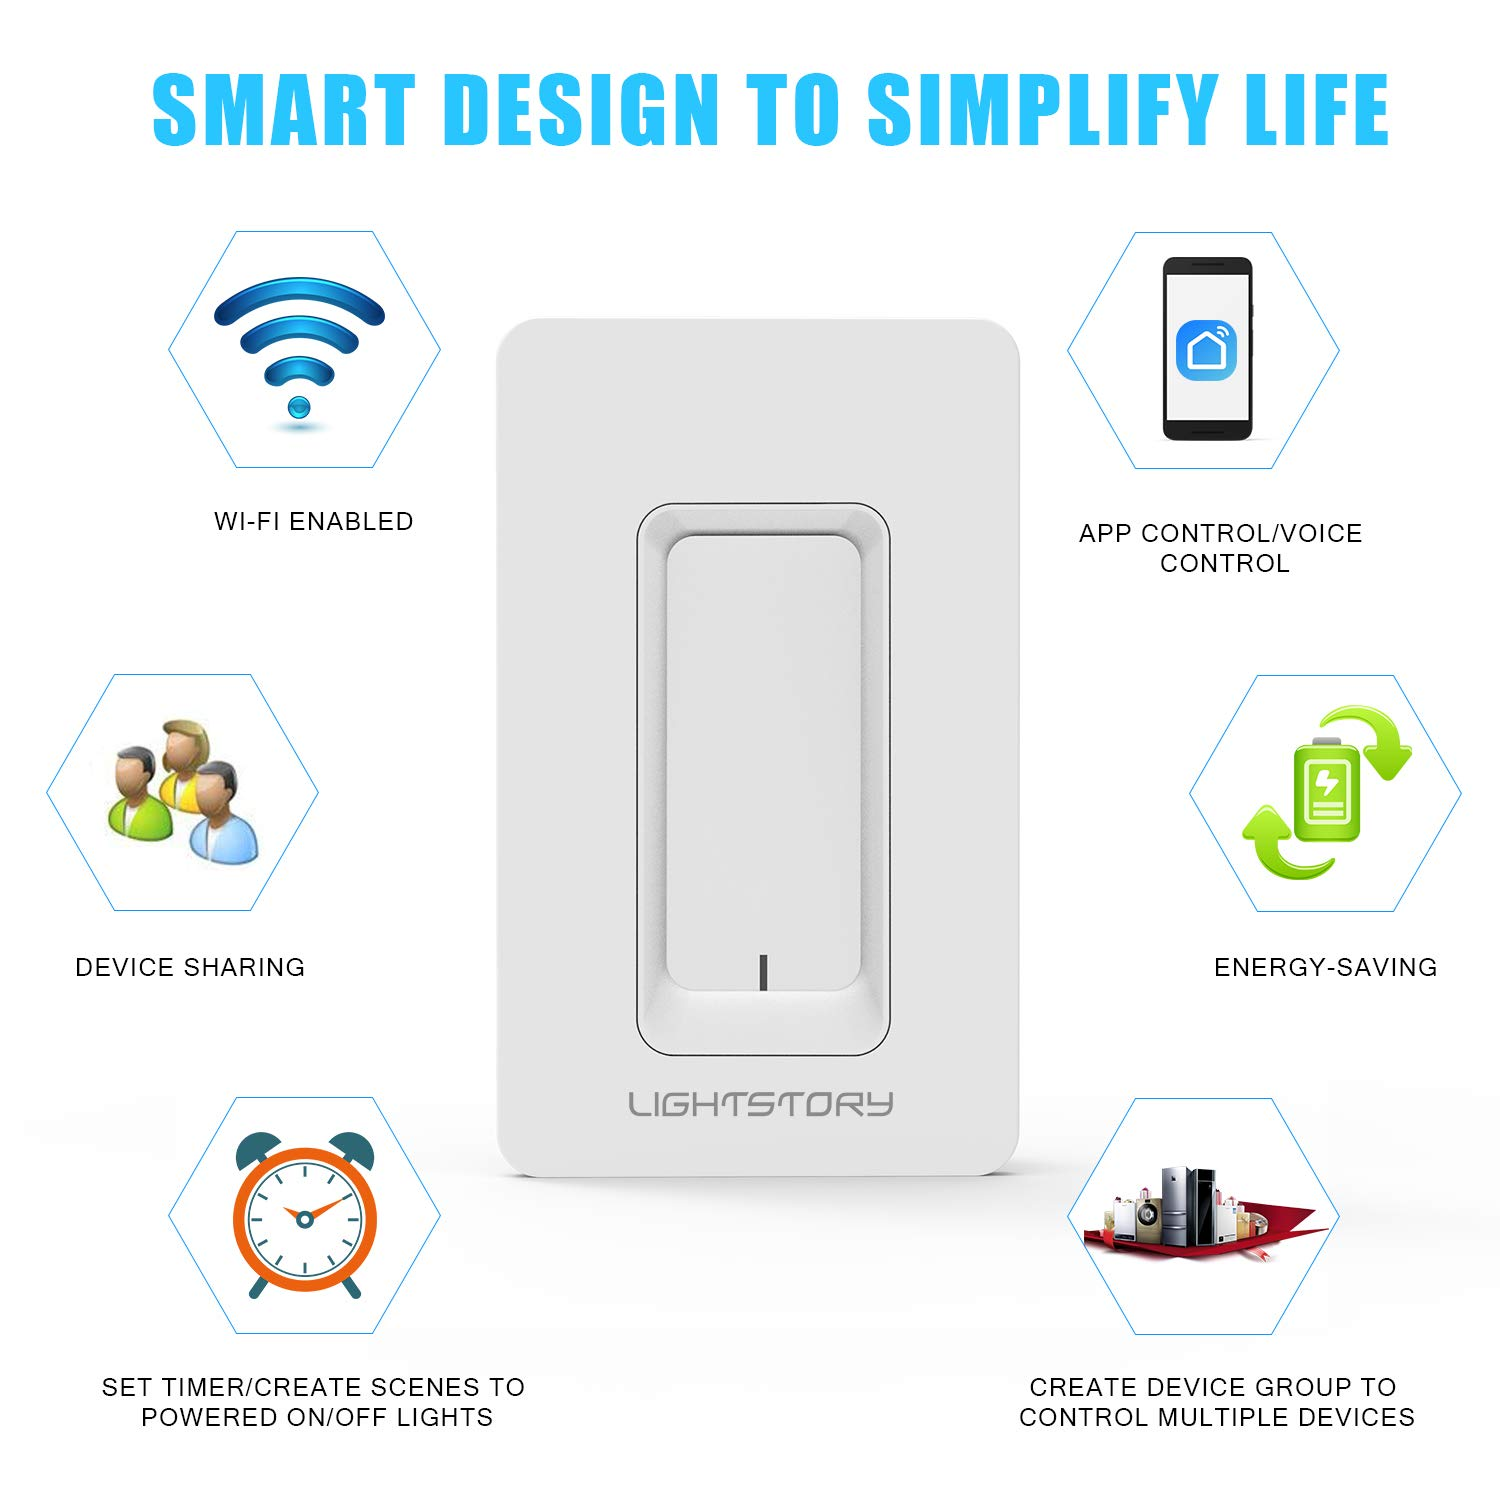 LIGHTSTORY WT02s Wi-Fi Light Remote Control Smart, Wireless Wall Switch No  Hub Required, Compatible with Alexa, Google Assistant, IFTTT), White